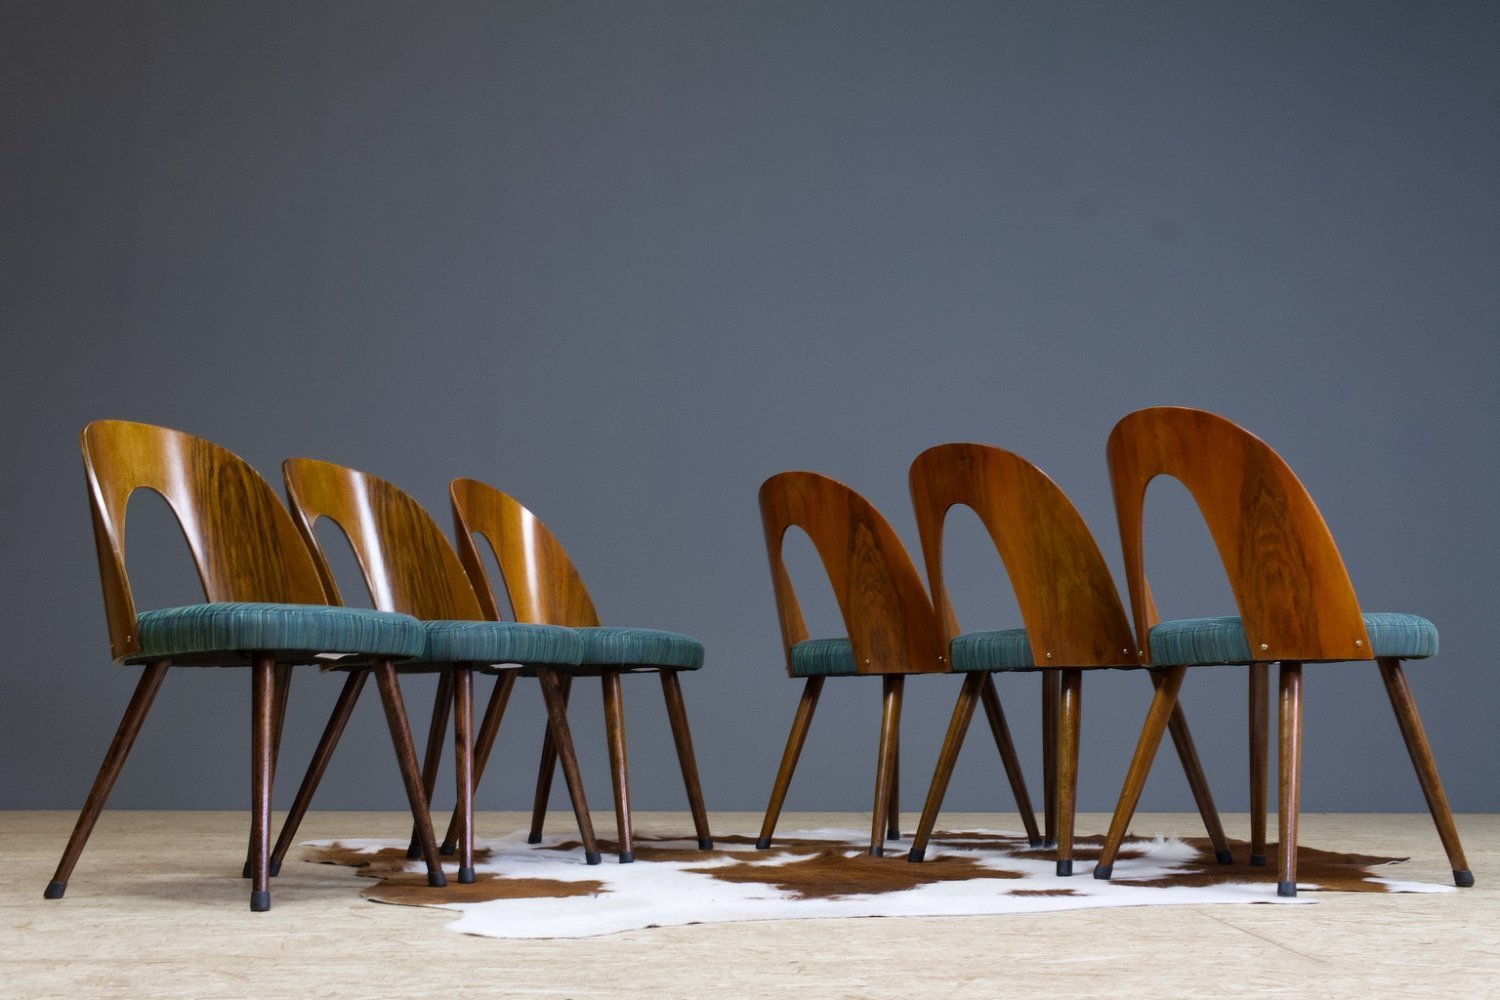 Set of 6 dining room chairs in walnut by Antonin Suman, 1960s